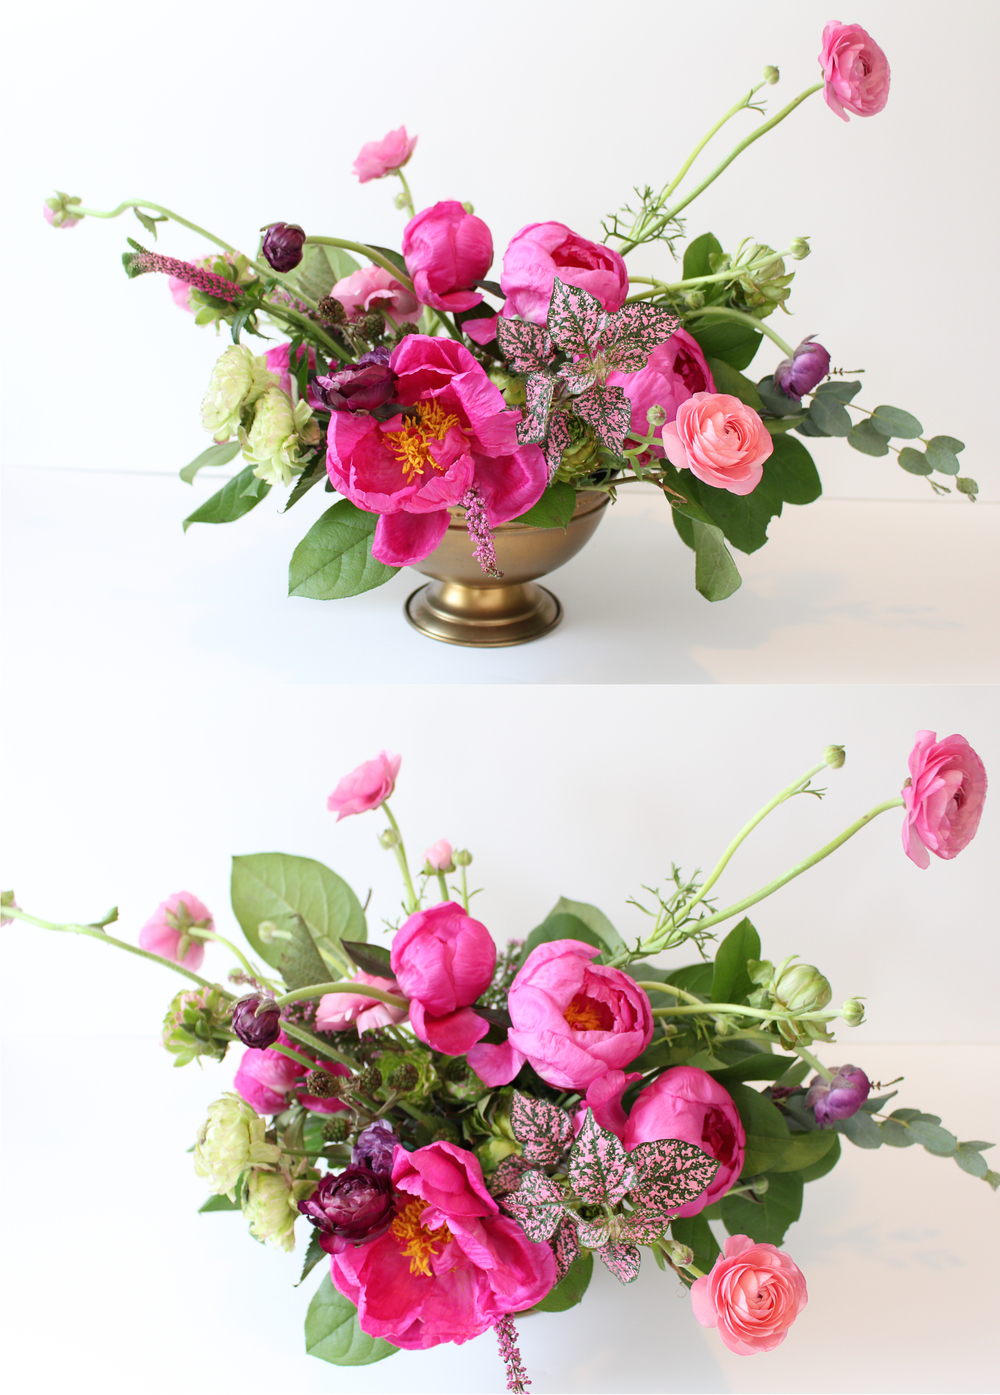 Arrange Flowers at Home!